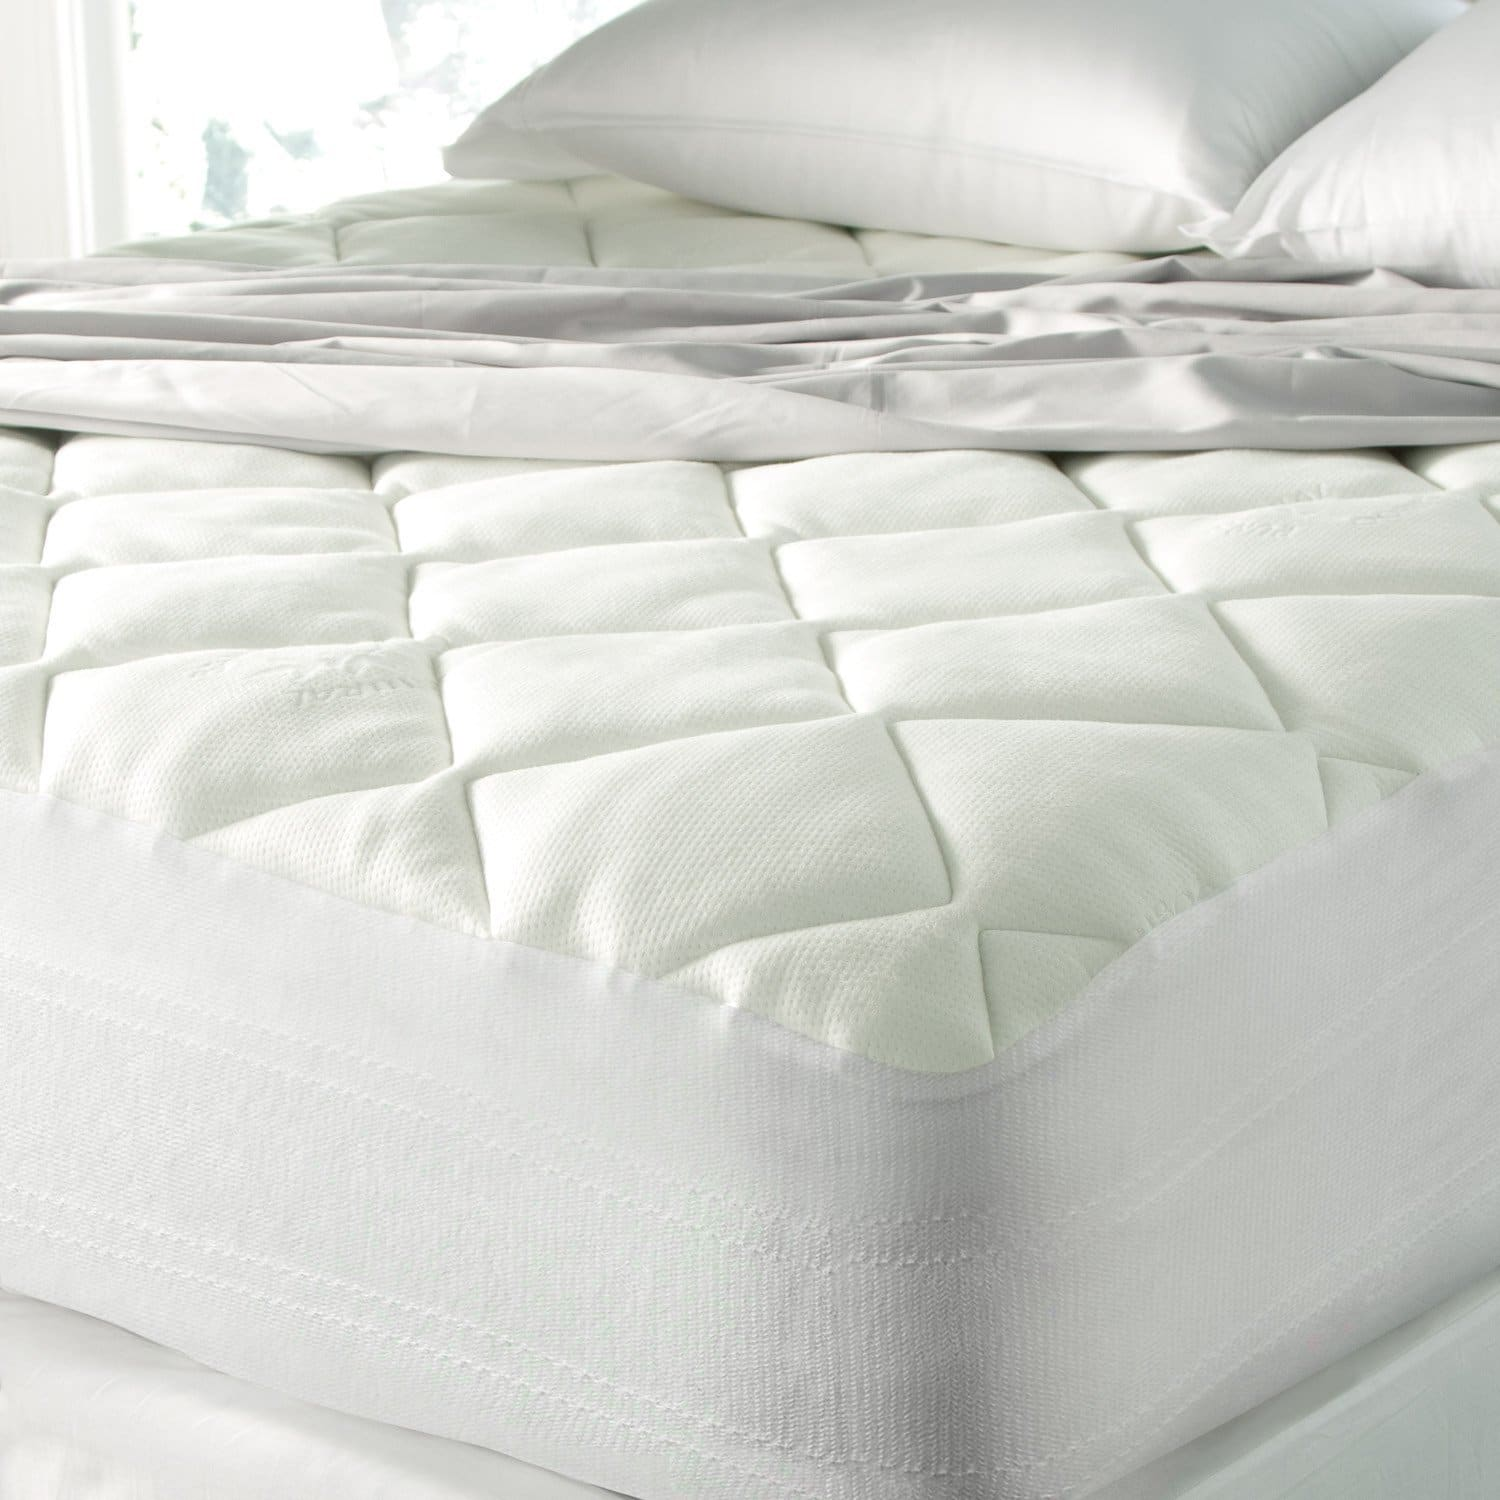 next mattresses from everything day for img mattress delivery relyon ruby worldstores pillow topper the c top home htm